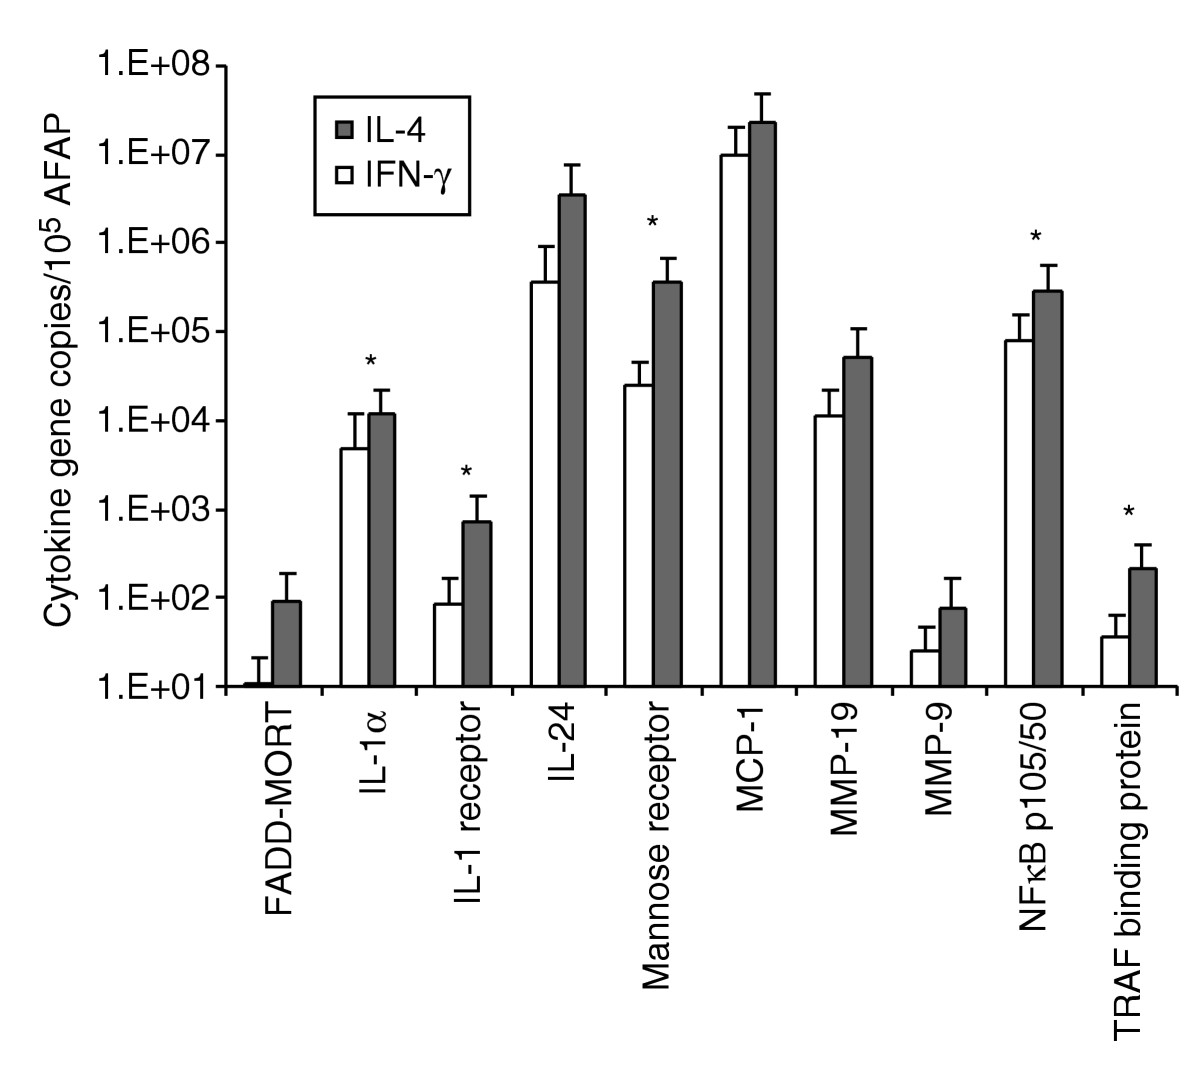 https://static-content.springer.com/image/art%3A10.1186%2Fgb-2005-6-2-r15/MediaObjects/13059_2004_Article_1050_Fig6_HTML.jpg